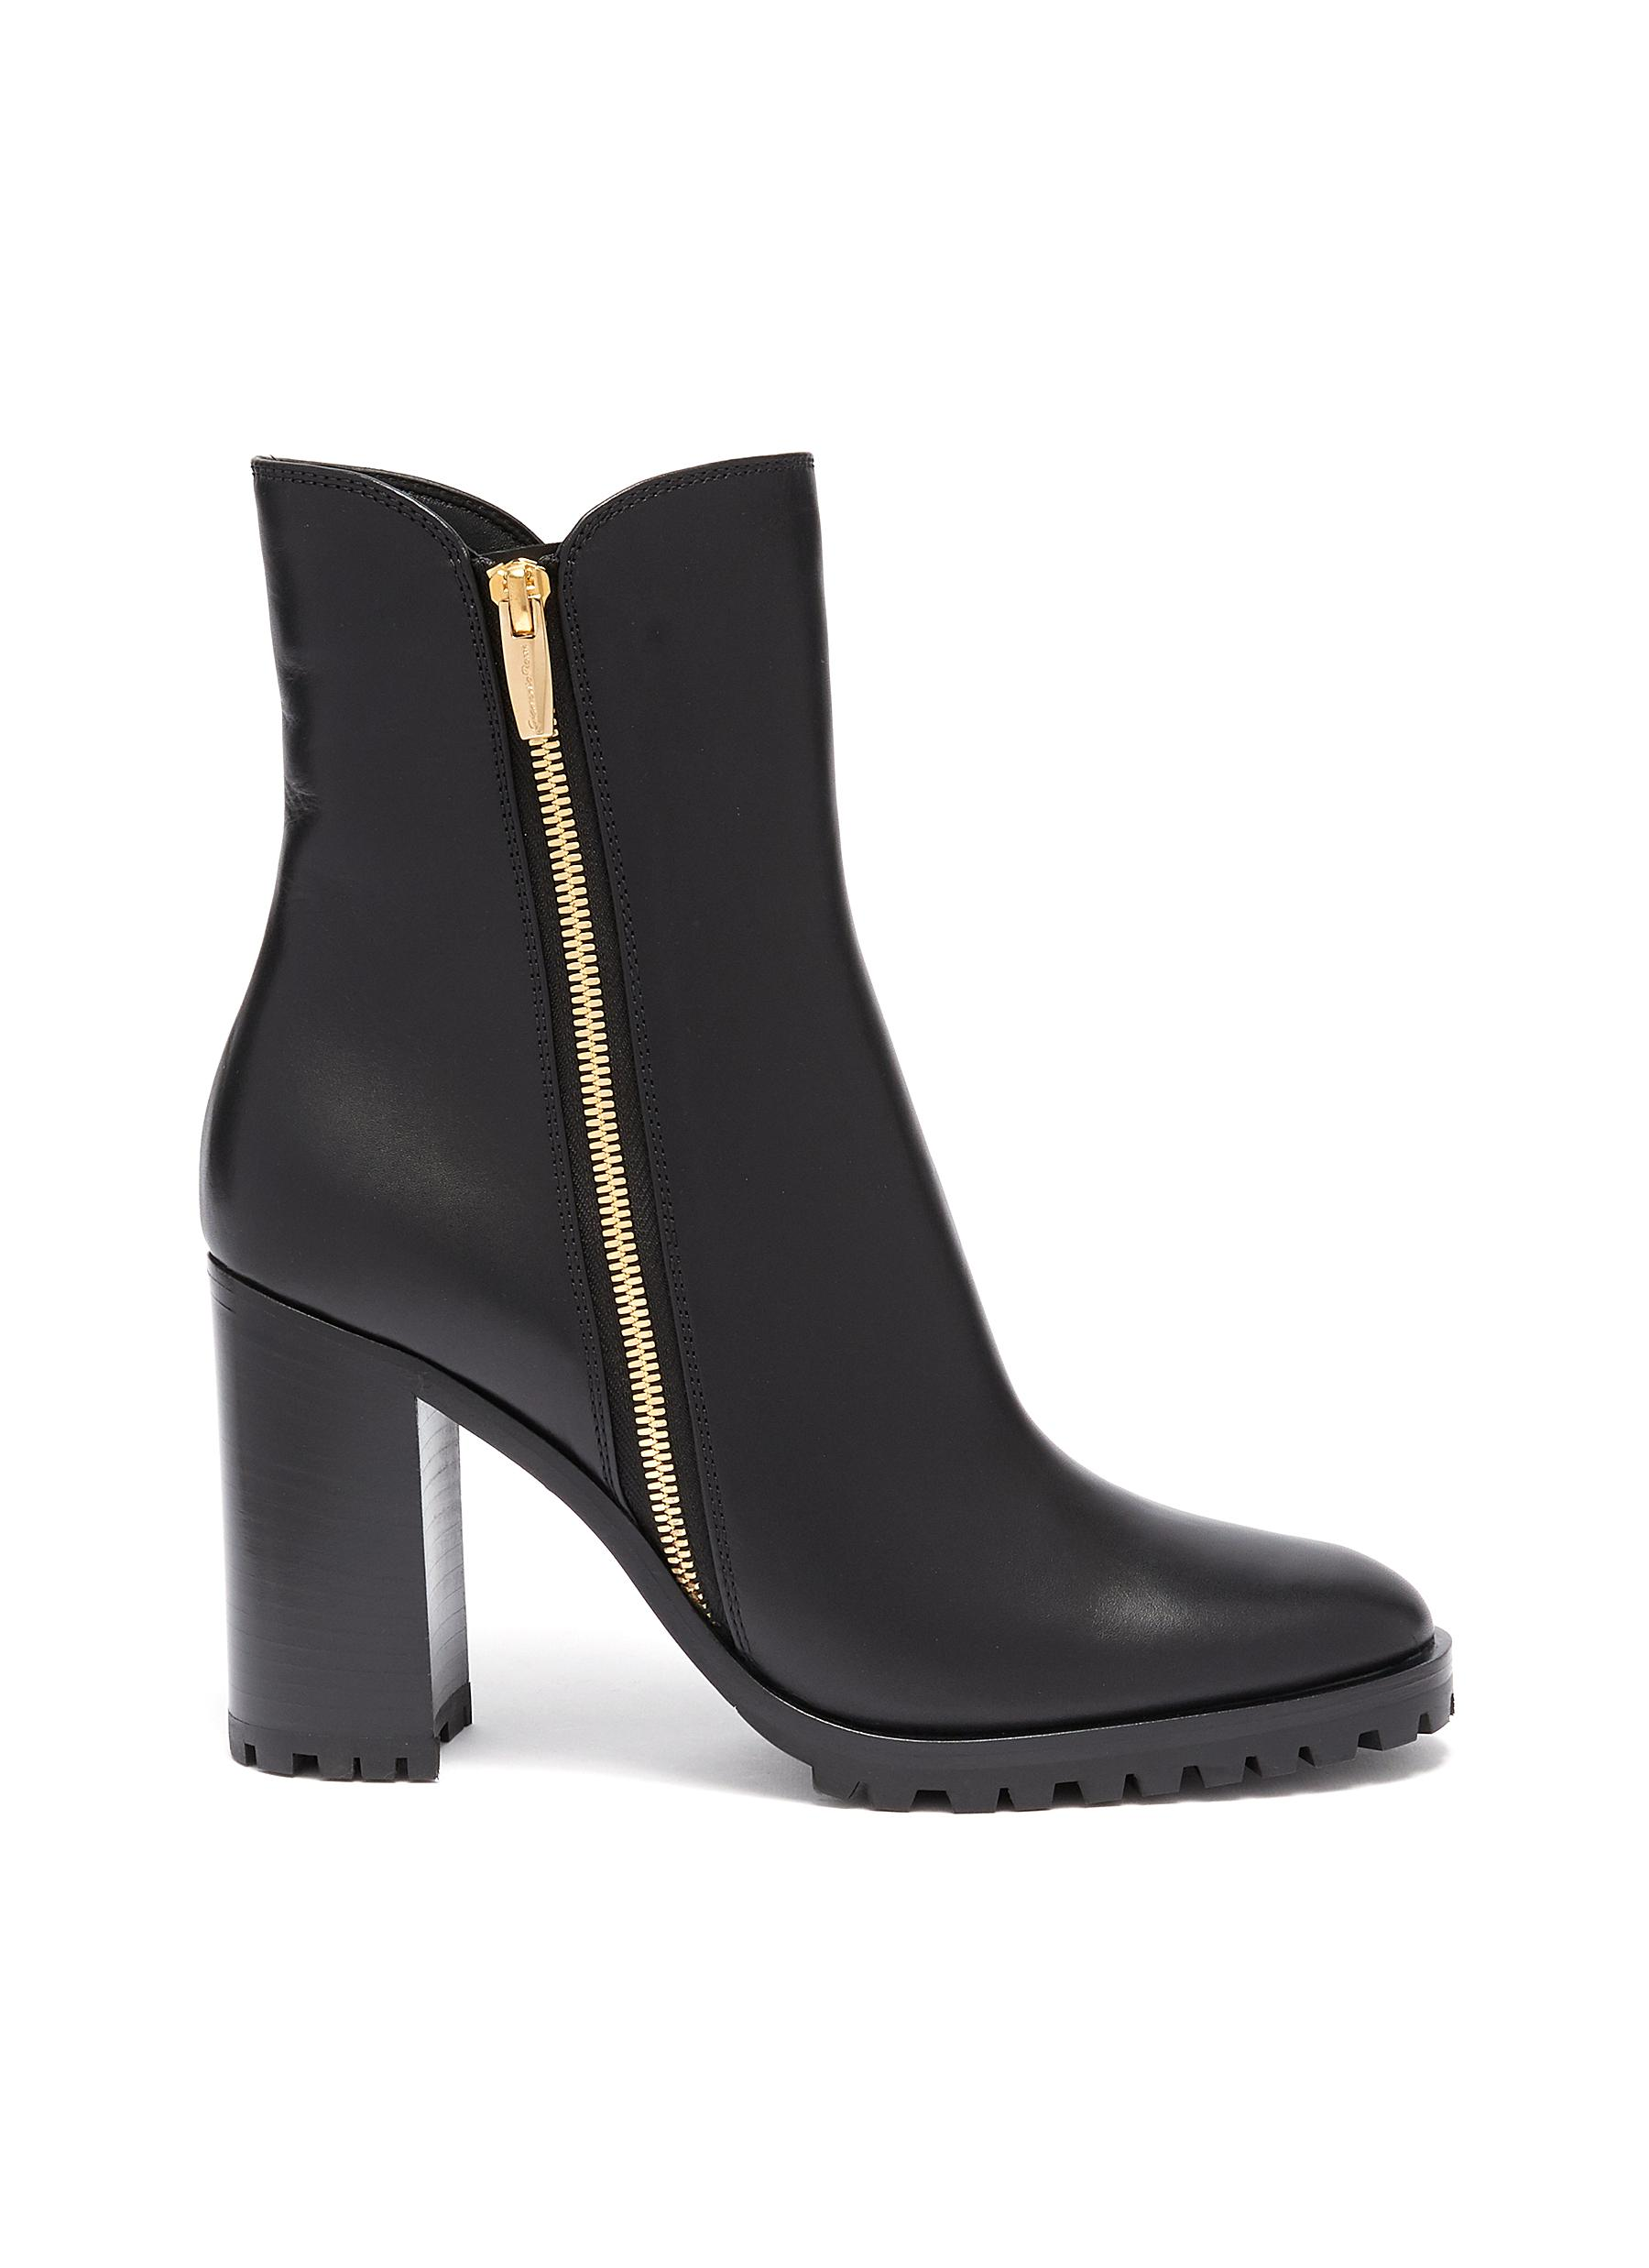 Leather ankle boots by Gianvito Rossi